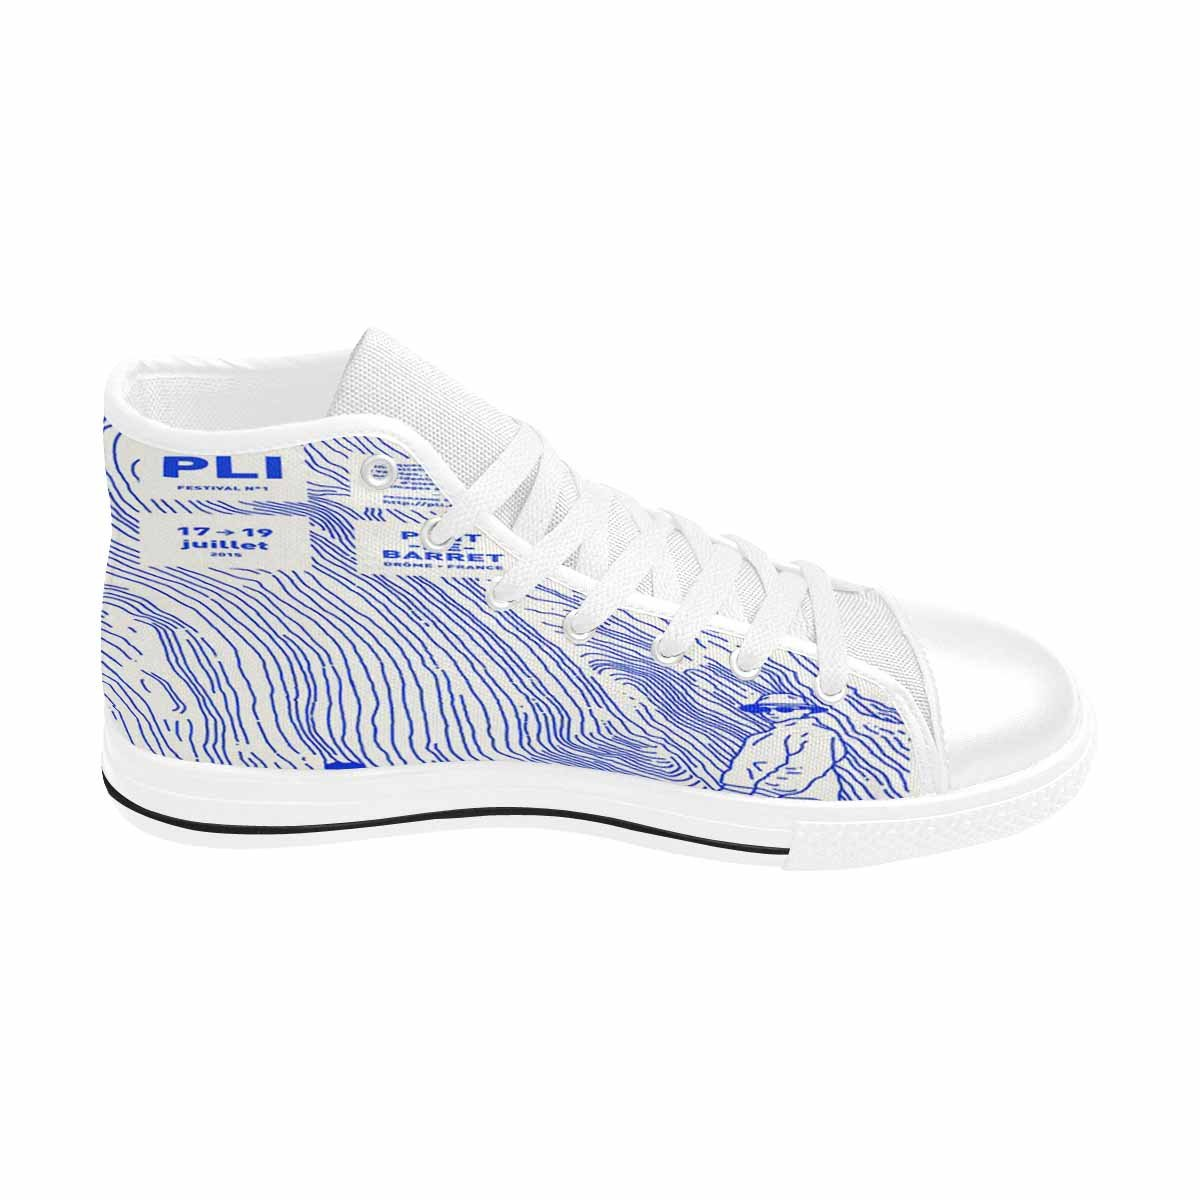 MingDe Sports Womens Classic Canvas Shoes Sneakers High Top Lace up Lightweight